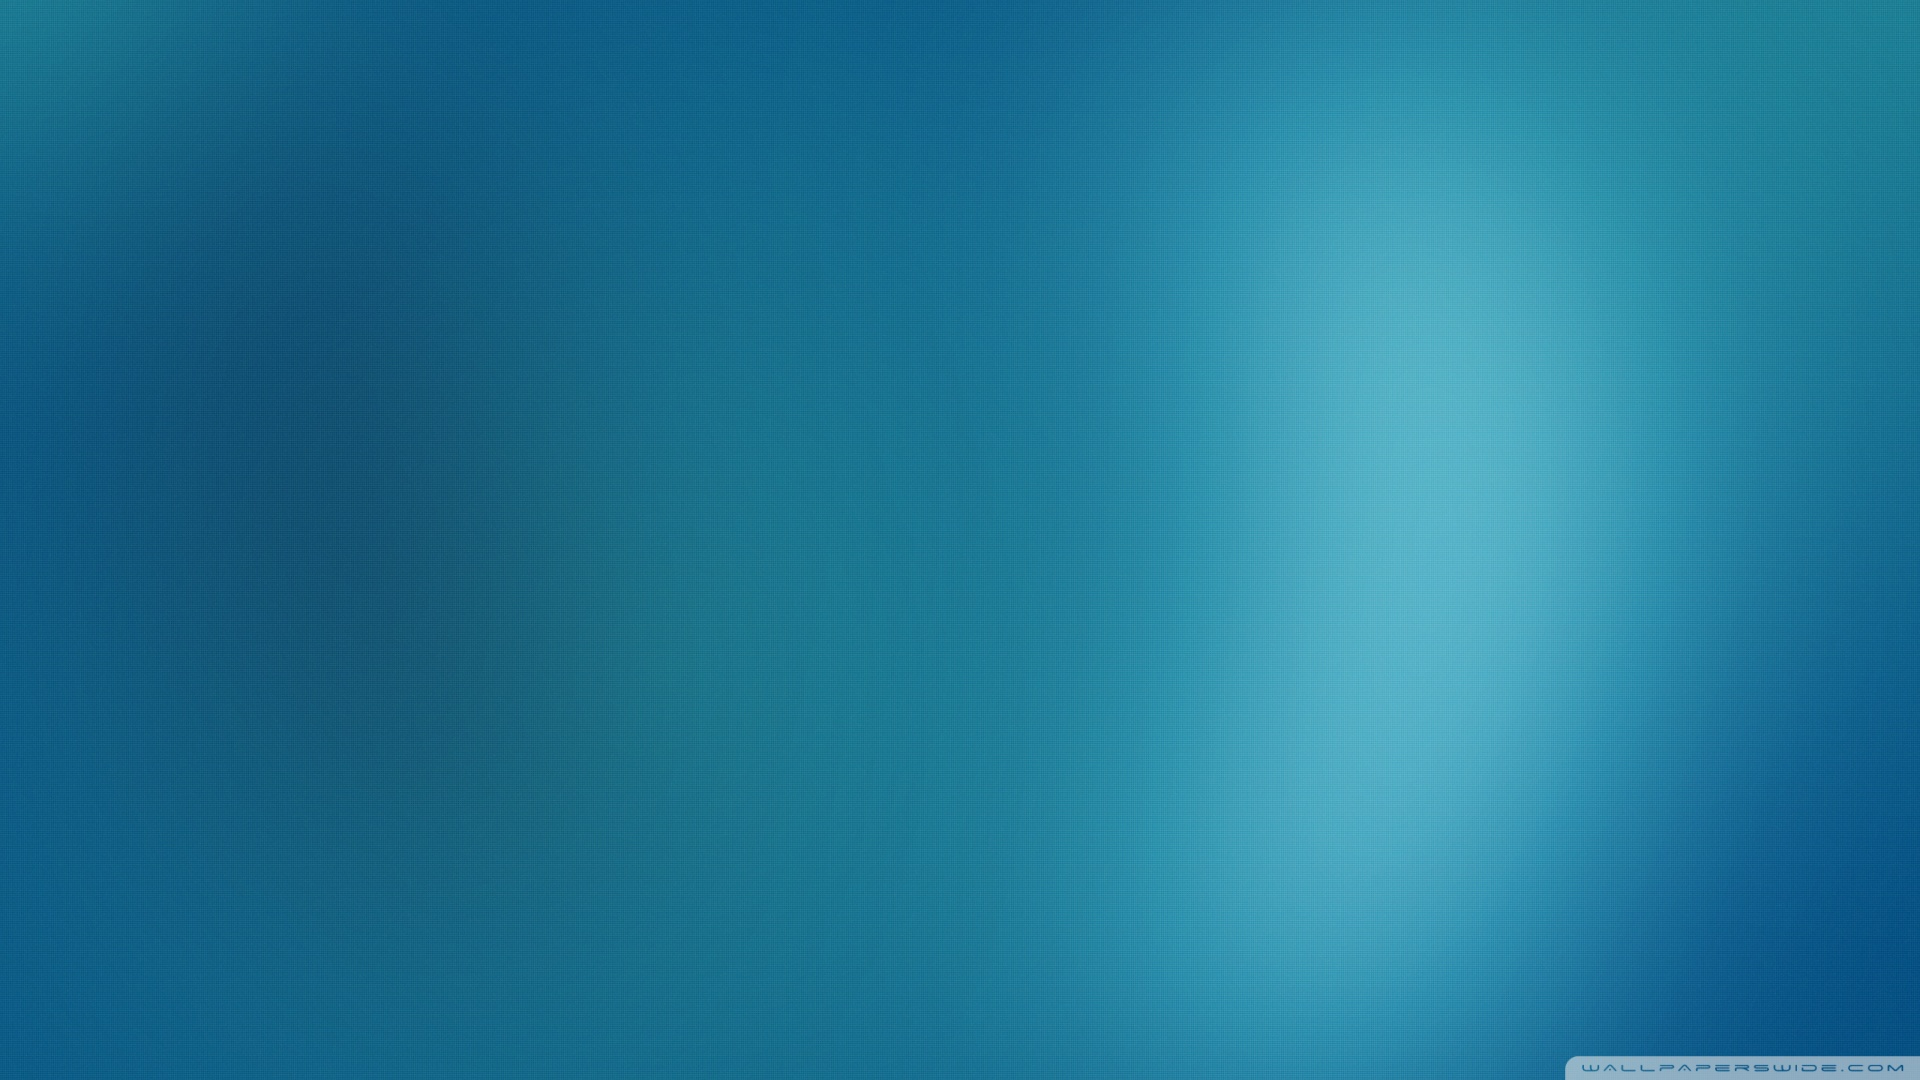 Blue wallpaper 1920x1080 wallpapersafari - Light blue linen wallpaper ...